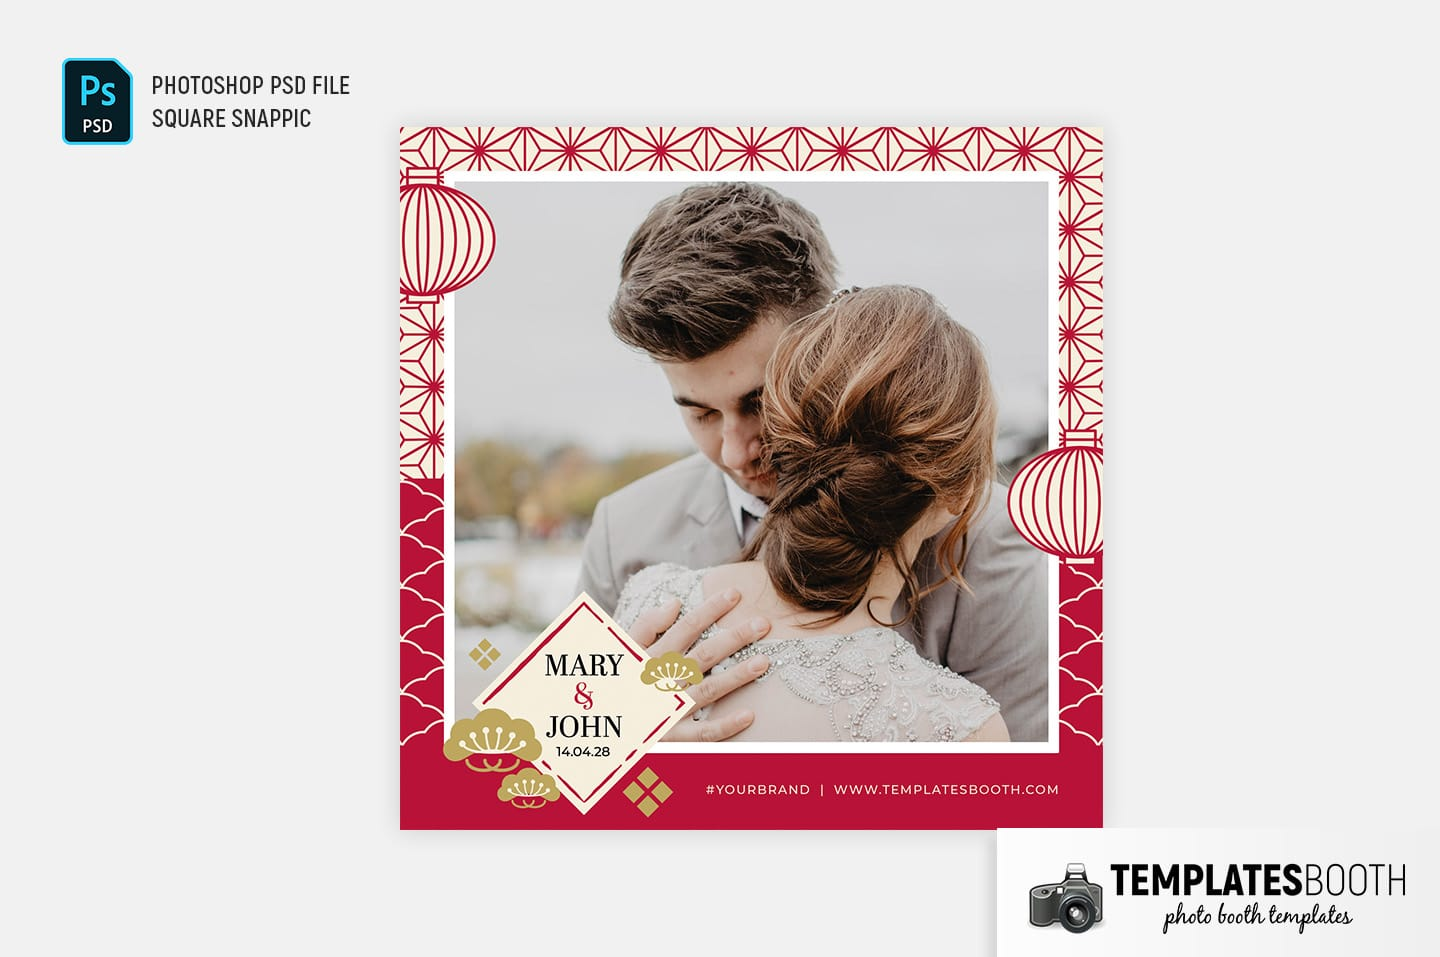 Chinese Wedding Photo Booth Template (Snappic)